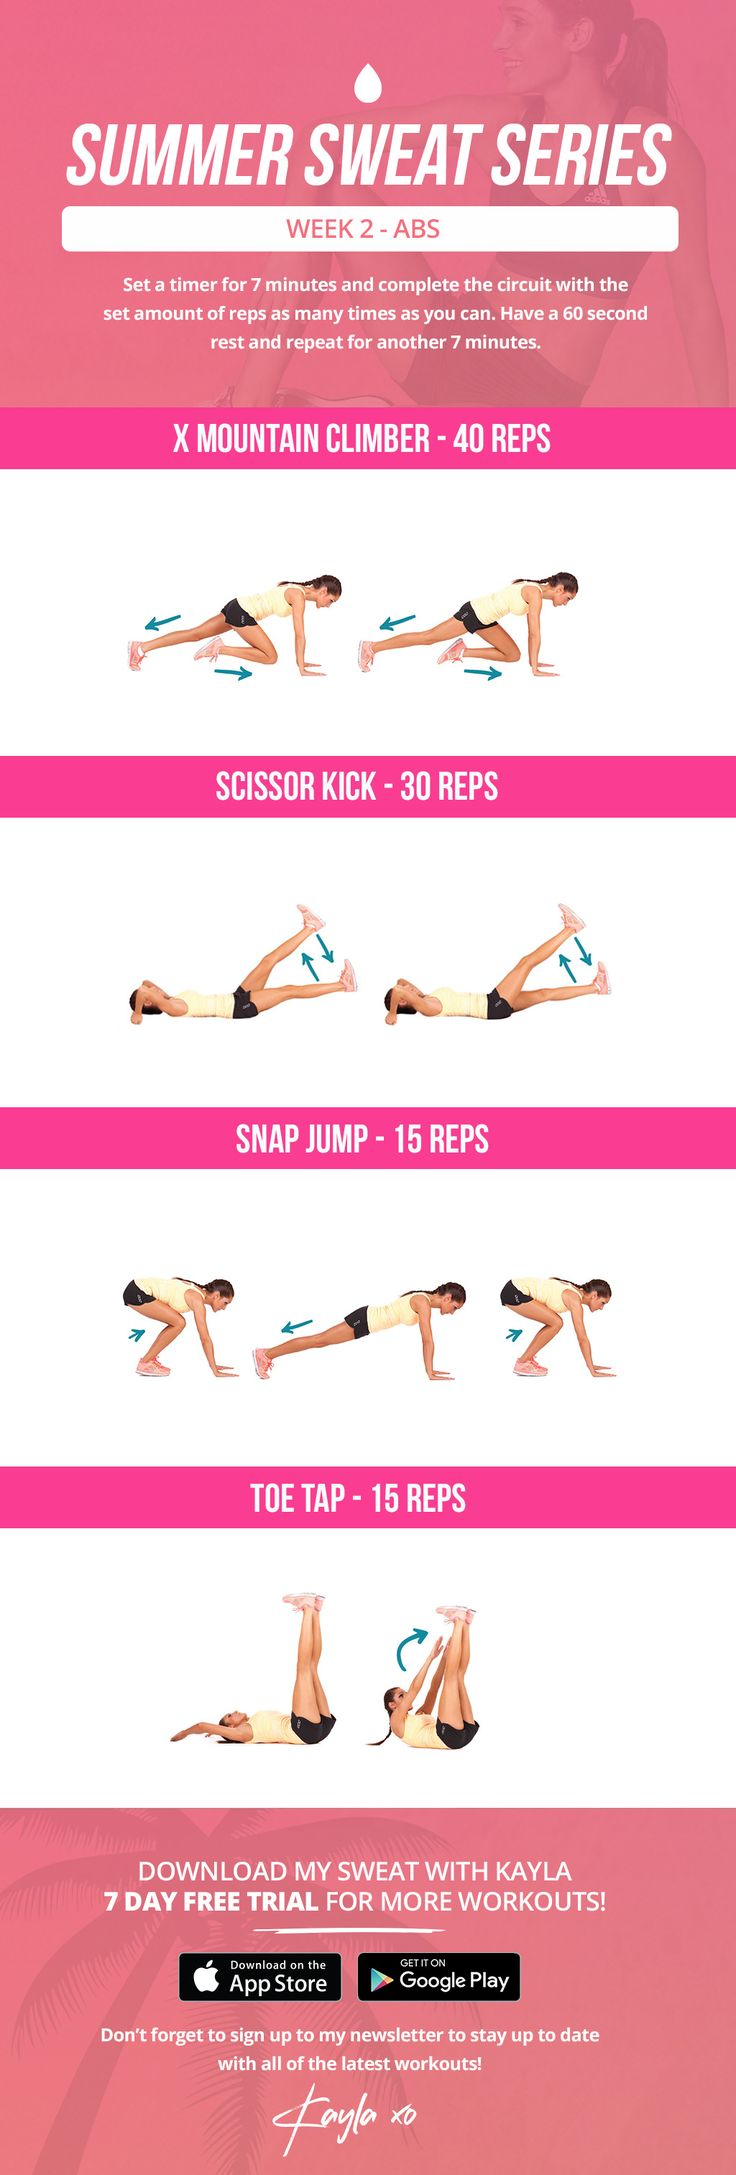 BBG, workout, abs, core, 15 minutes or less, video available - Summer Sweat Series Week2 Friday